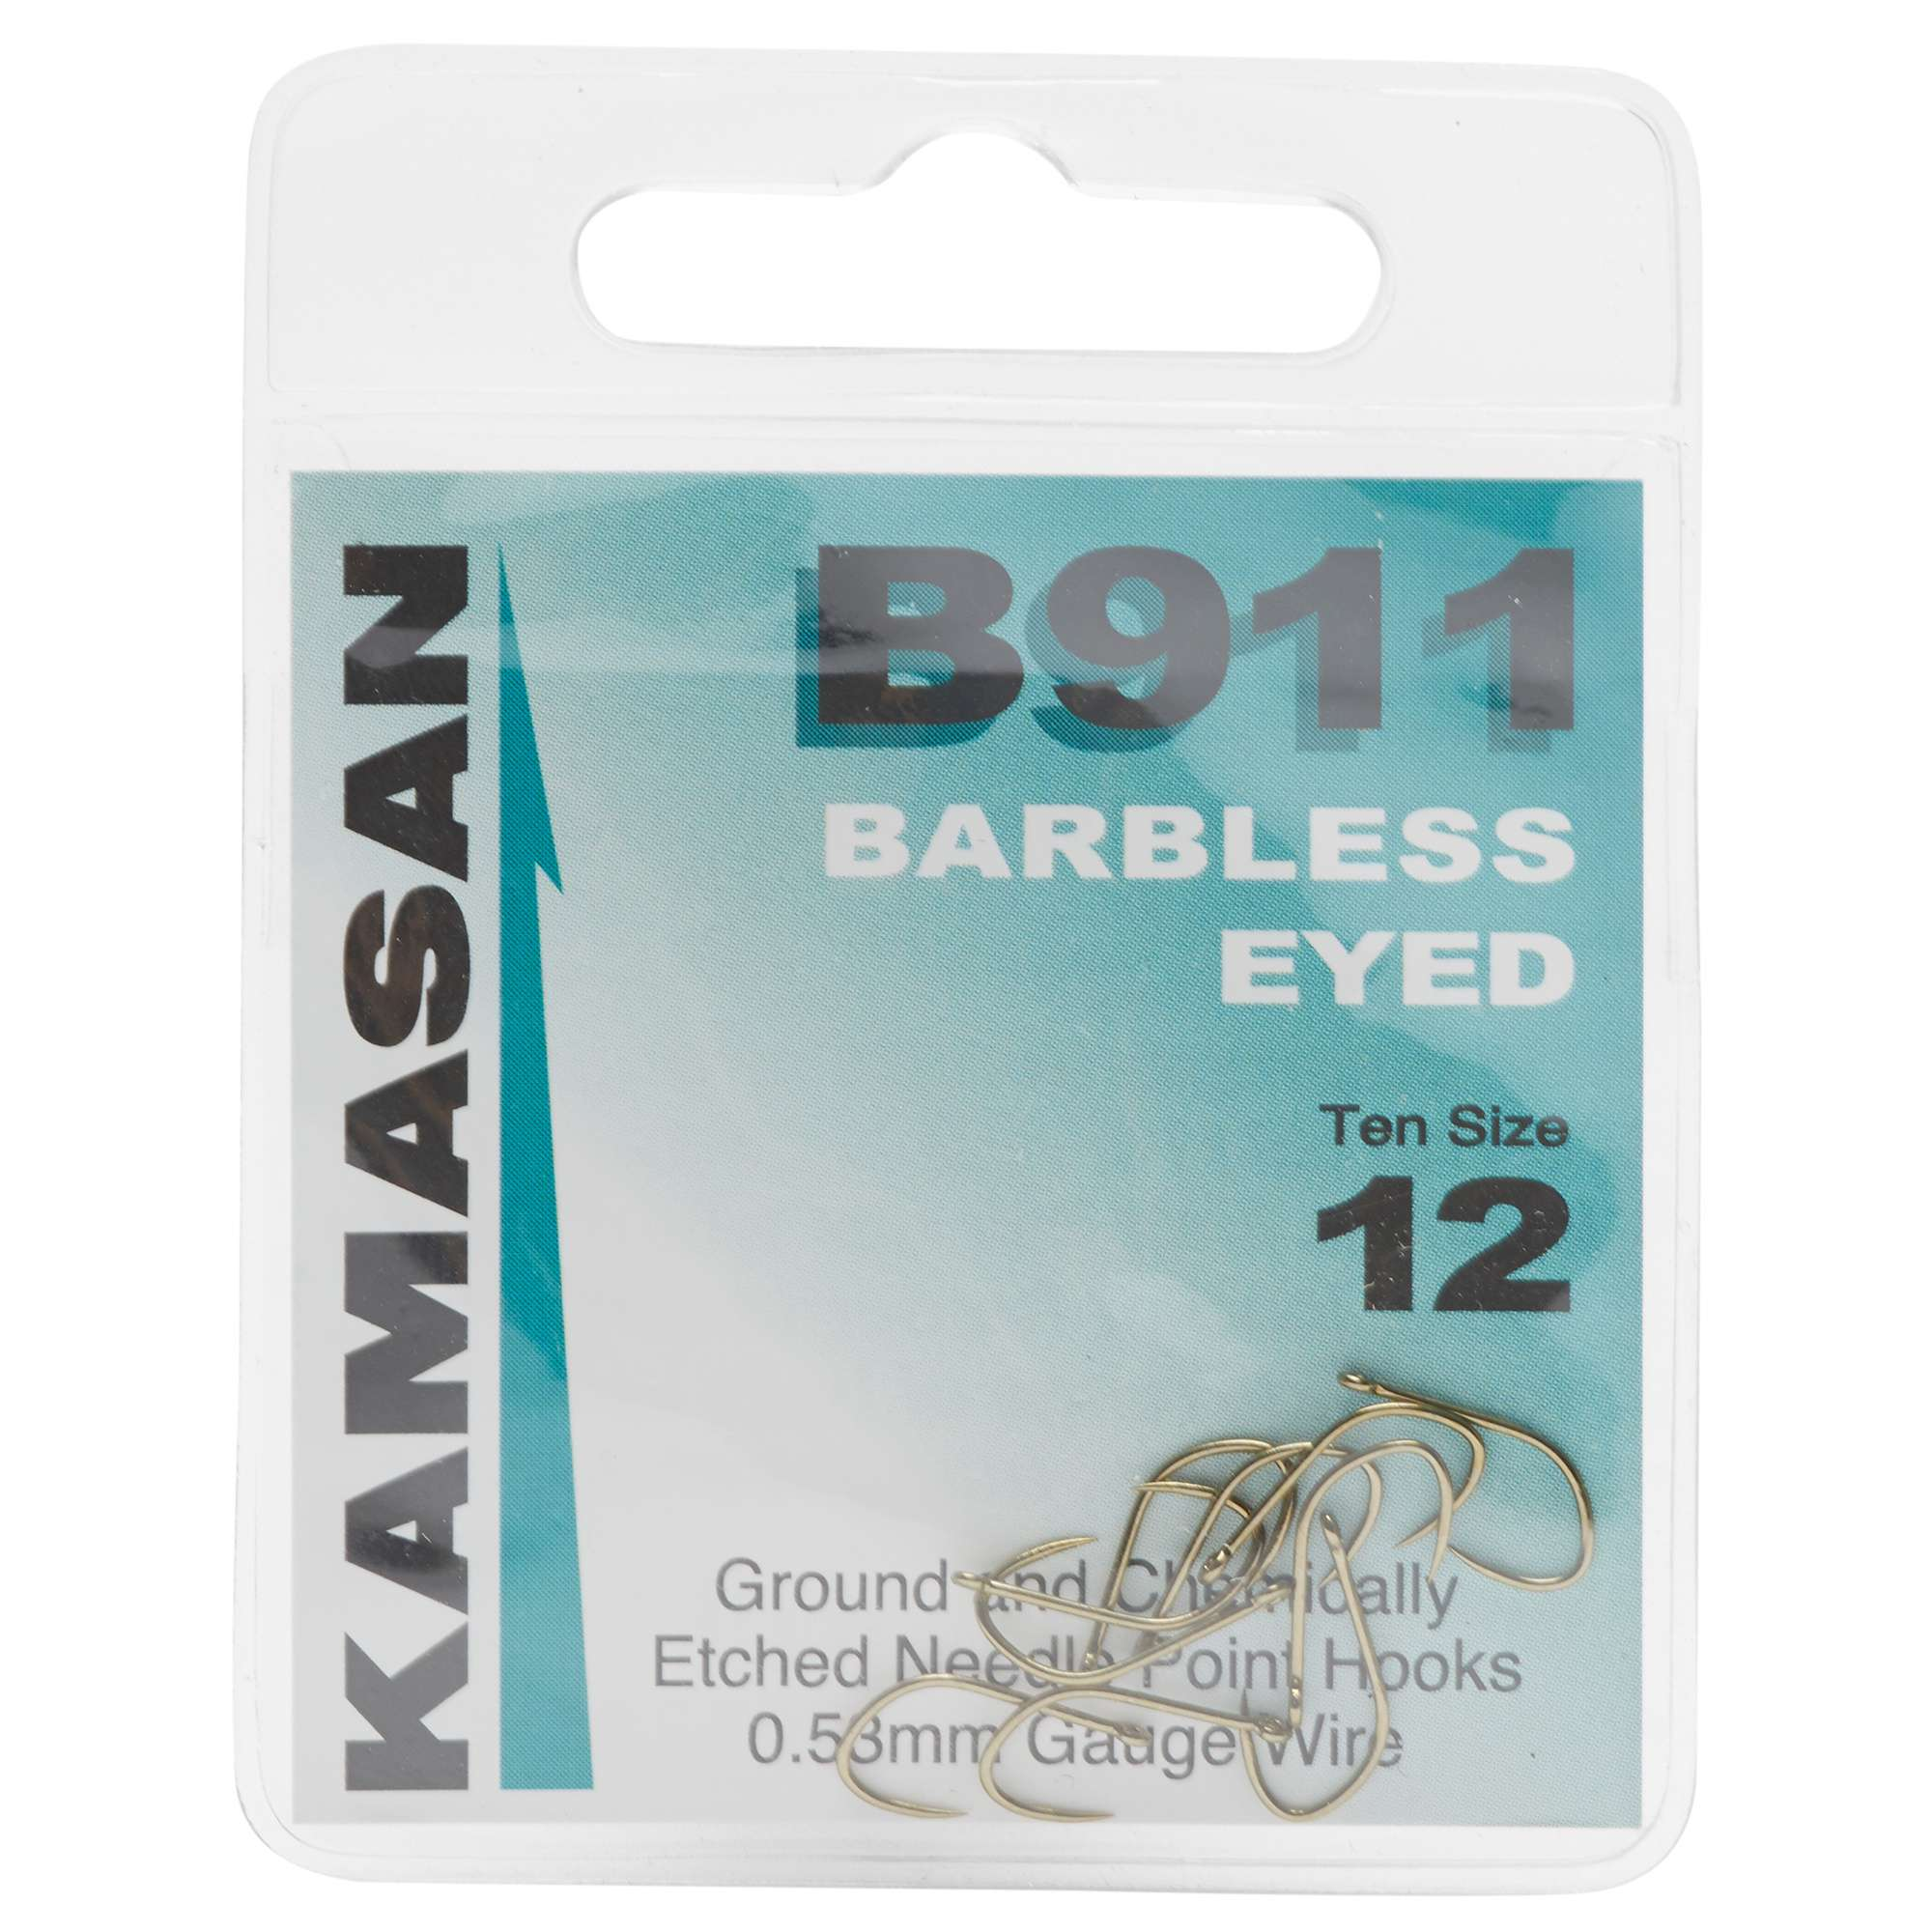 KAMASAN B911 Extra Strong Eyed Fishing Hooks - Size 12